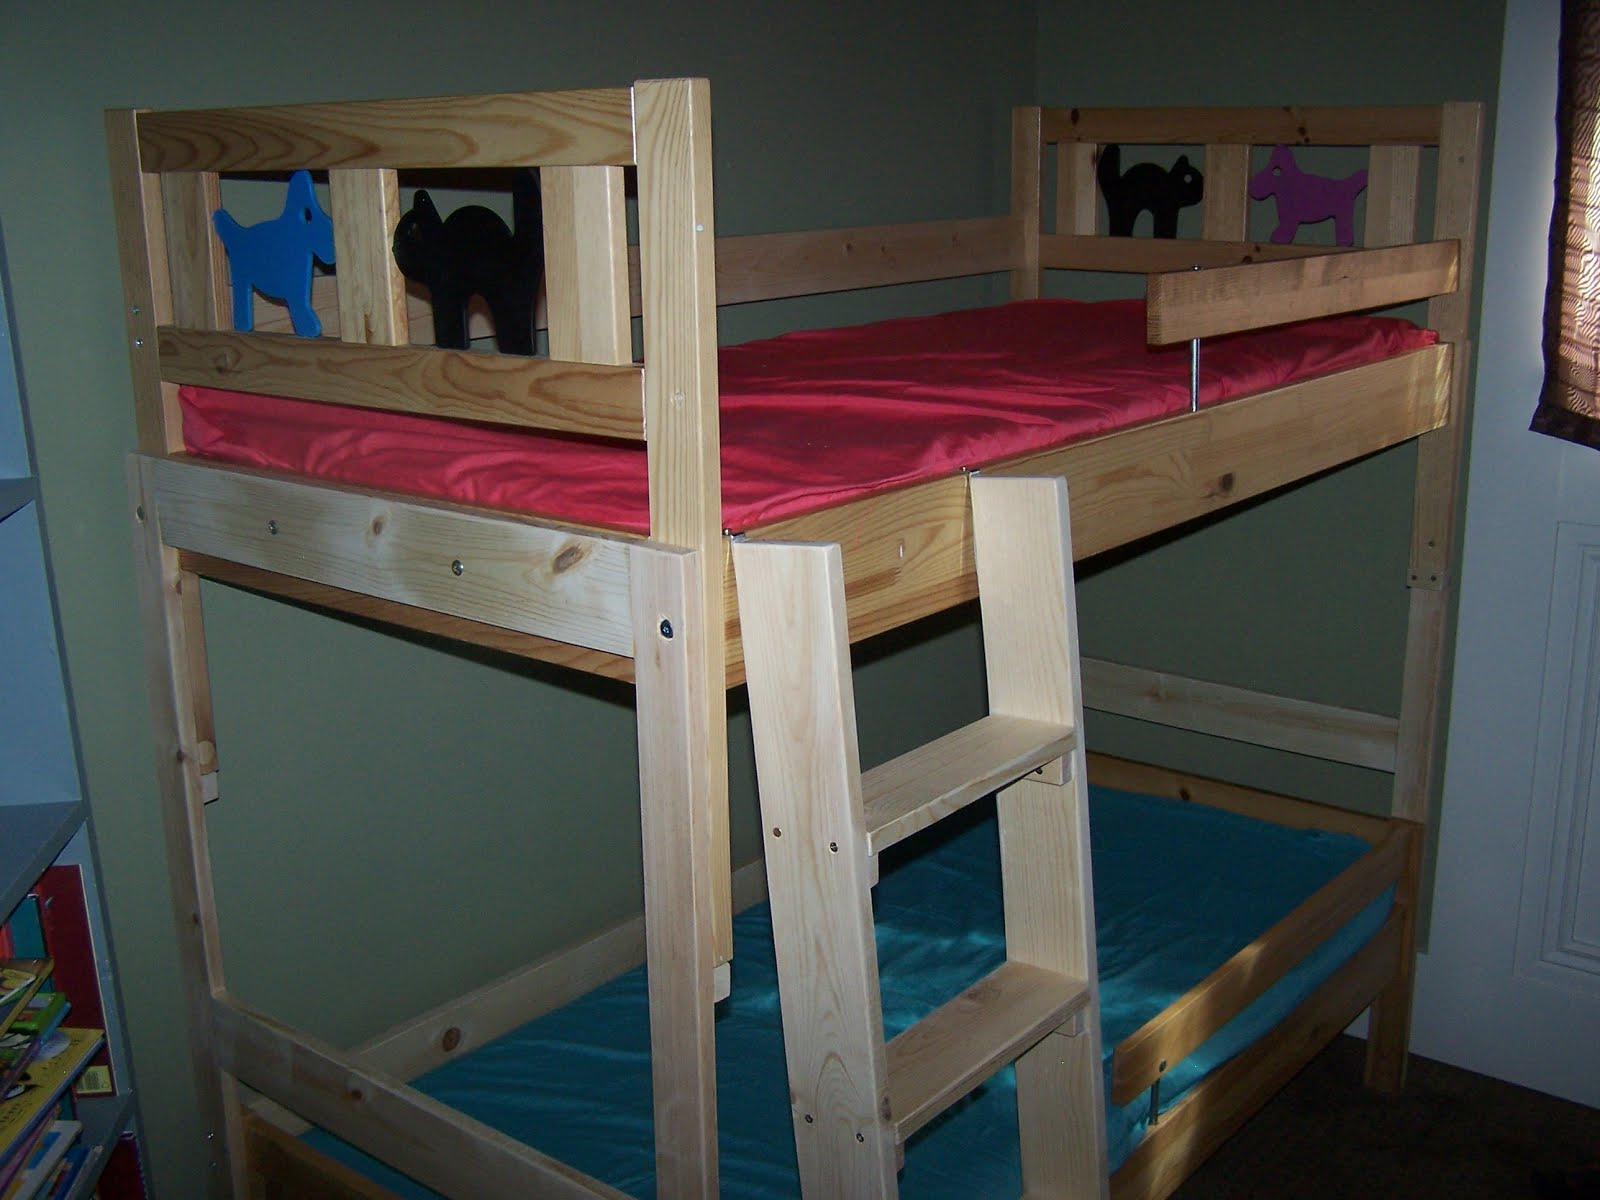 Ikea Kritter Toddler Bed Frame ~ Ikea Toddler Bunk Beds ~ Get Home Decorating